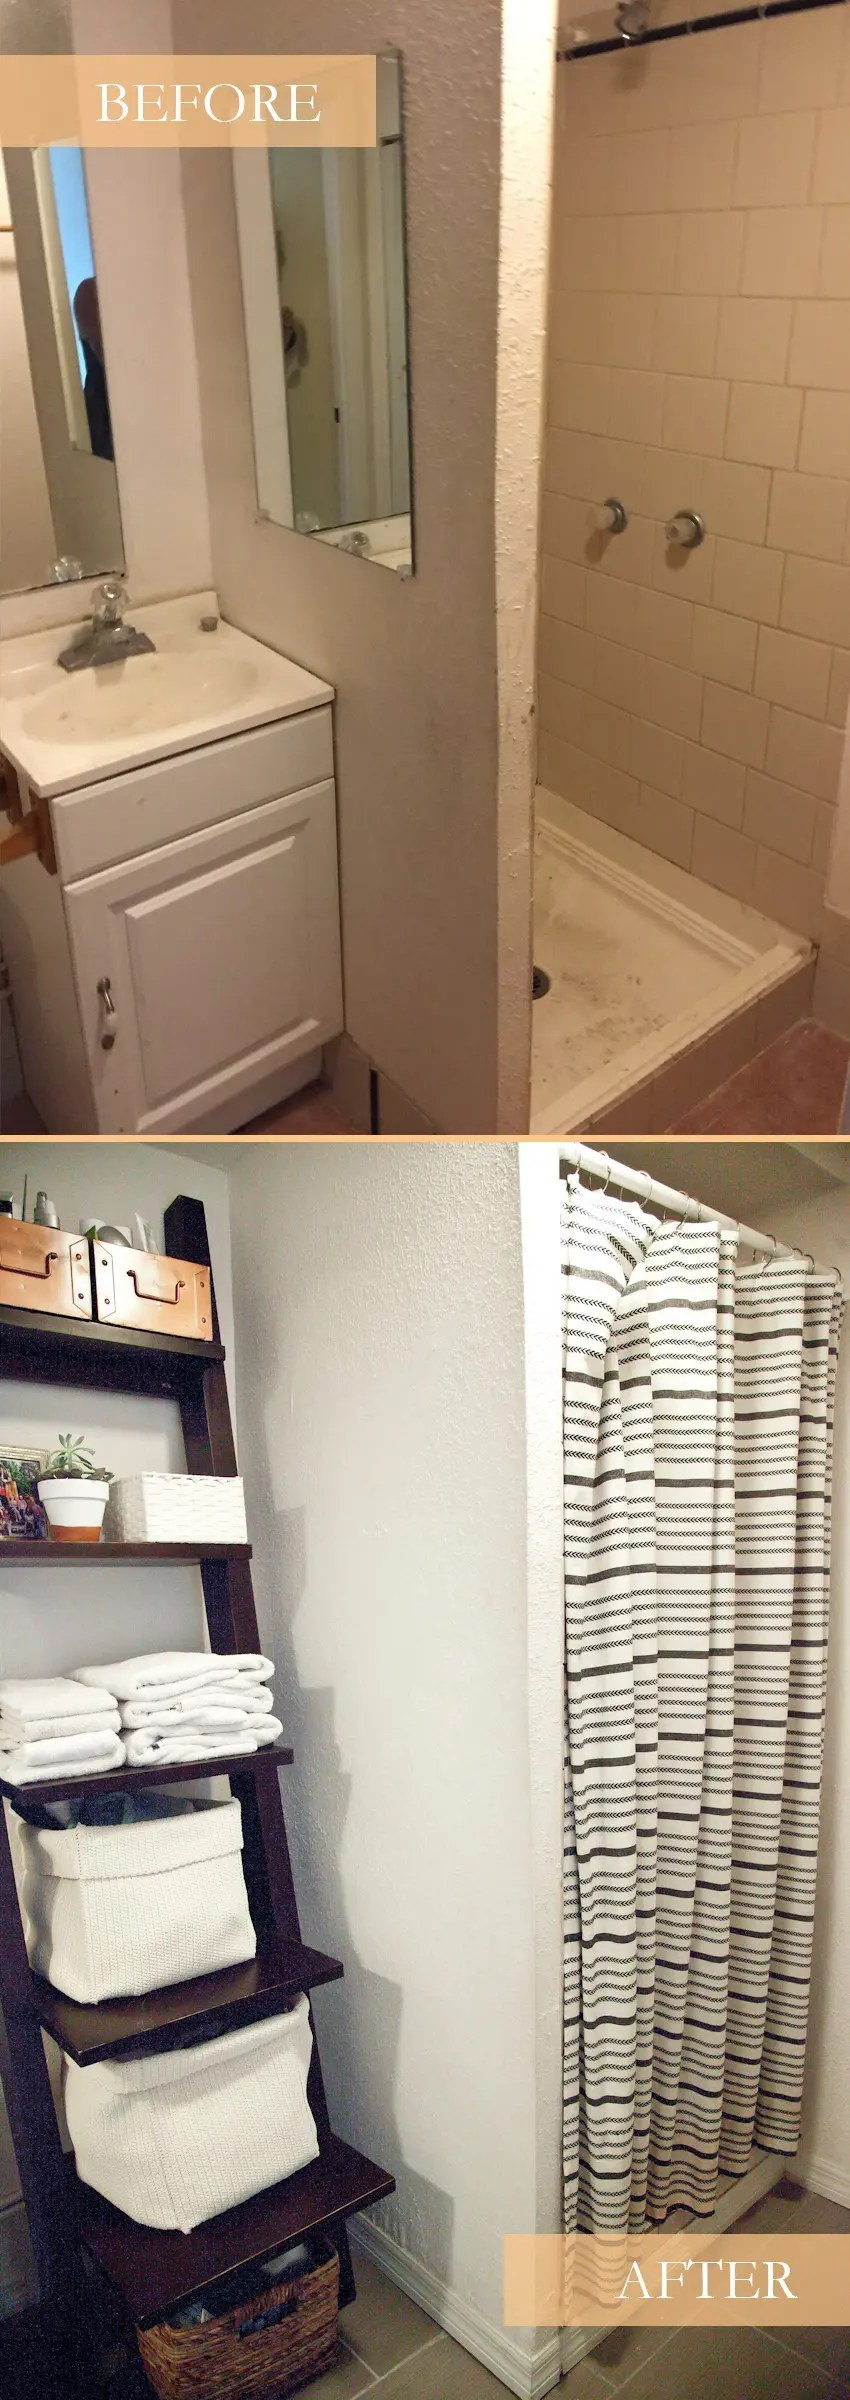 Simple Taking it Our light and bright simple studio bathroom remodel A Before and After Taking it